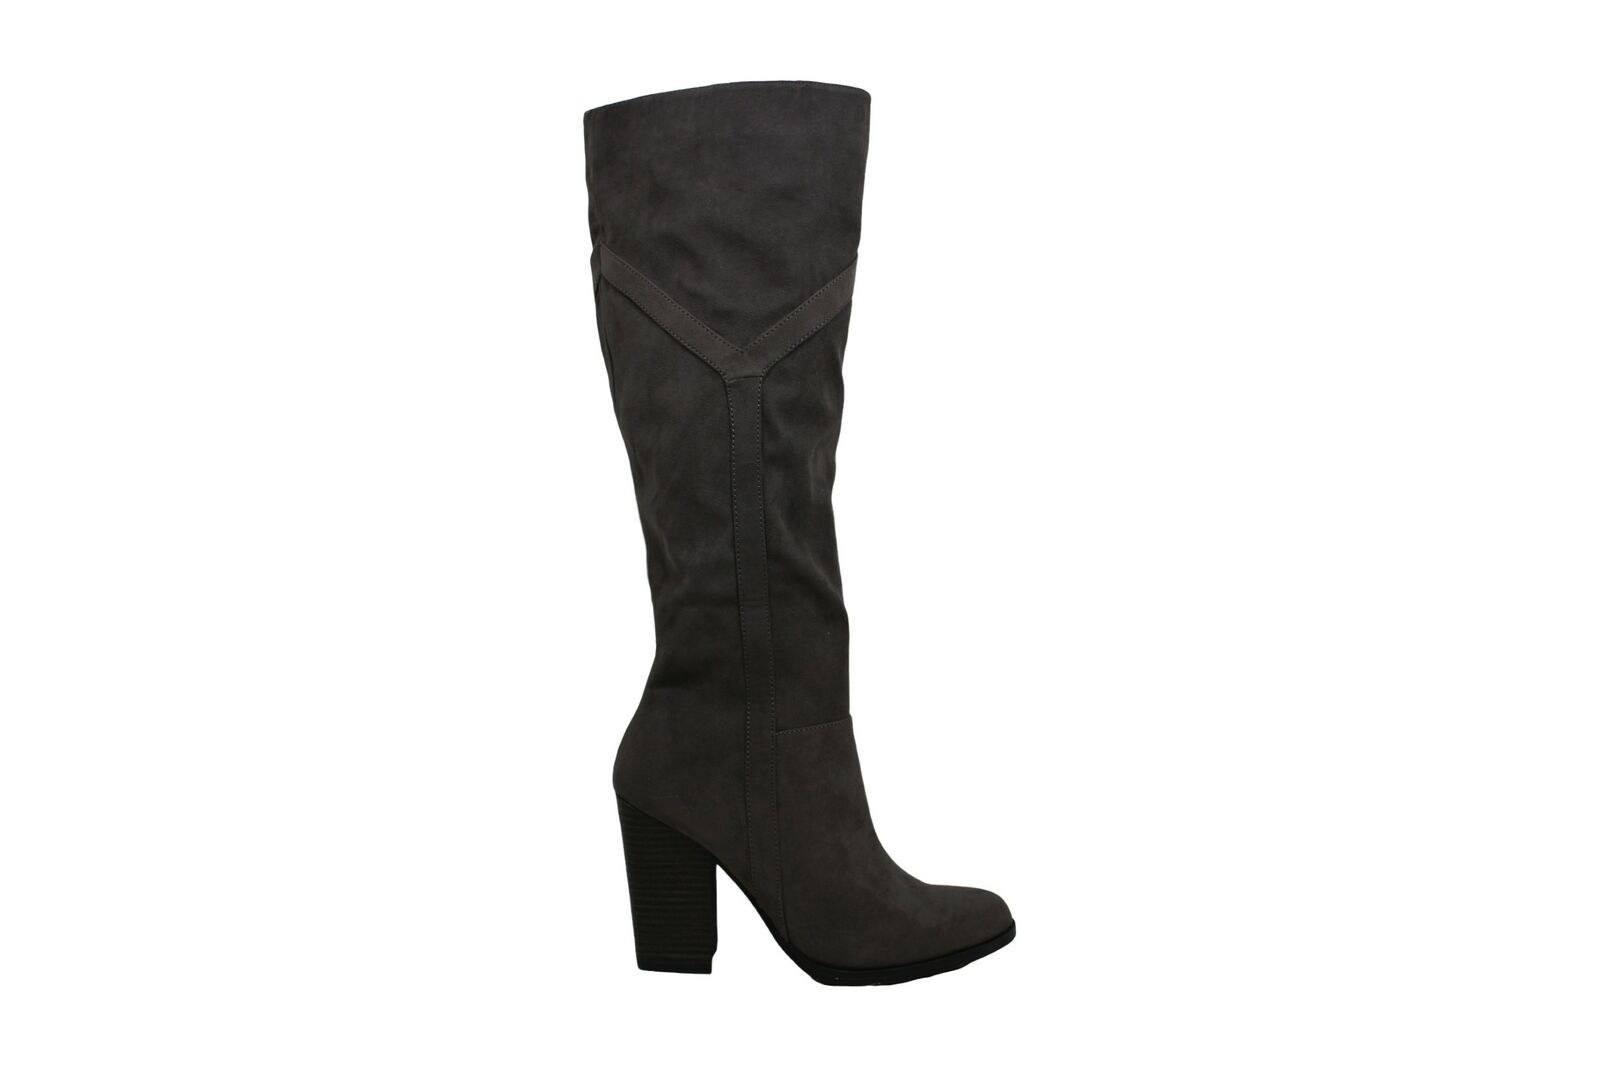 Journee Collection Womens Kyllie Boot, Grey, Size 5.5 US / 3.5 UK